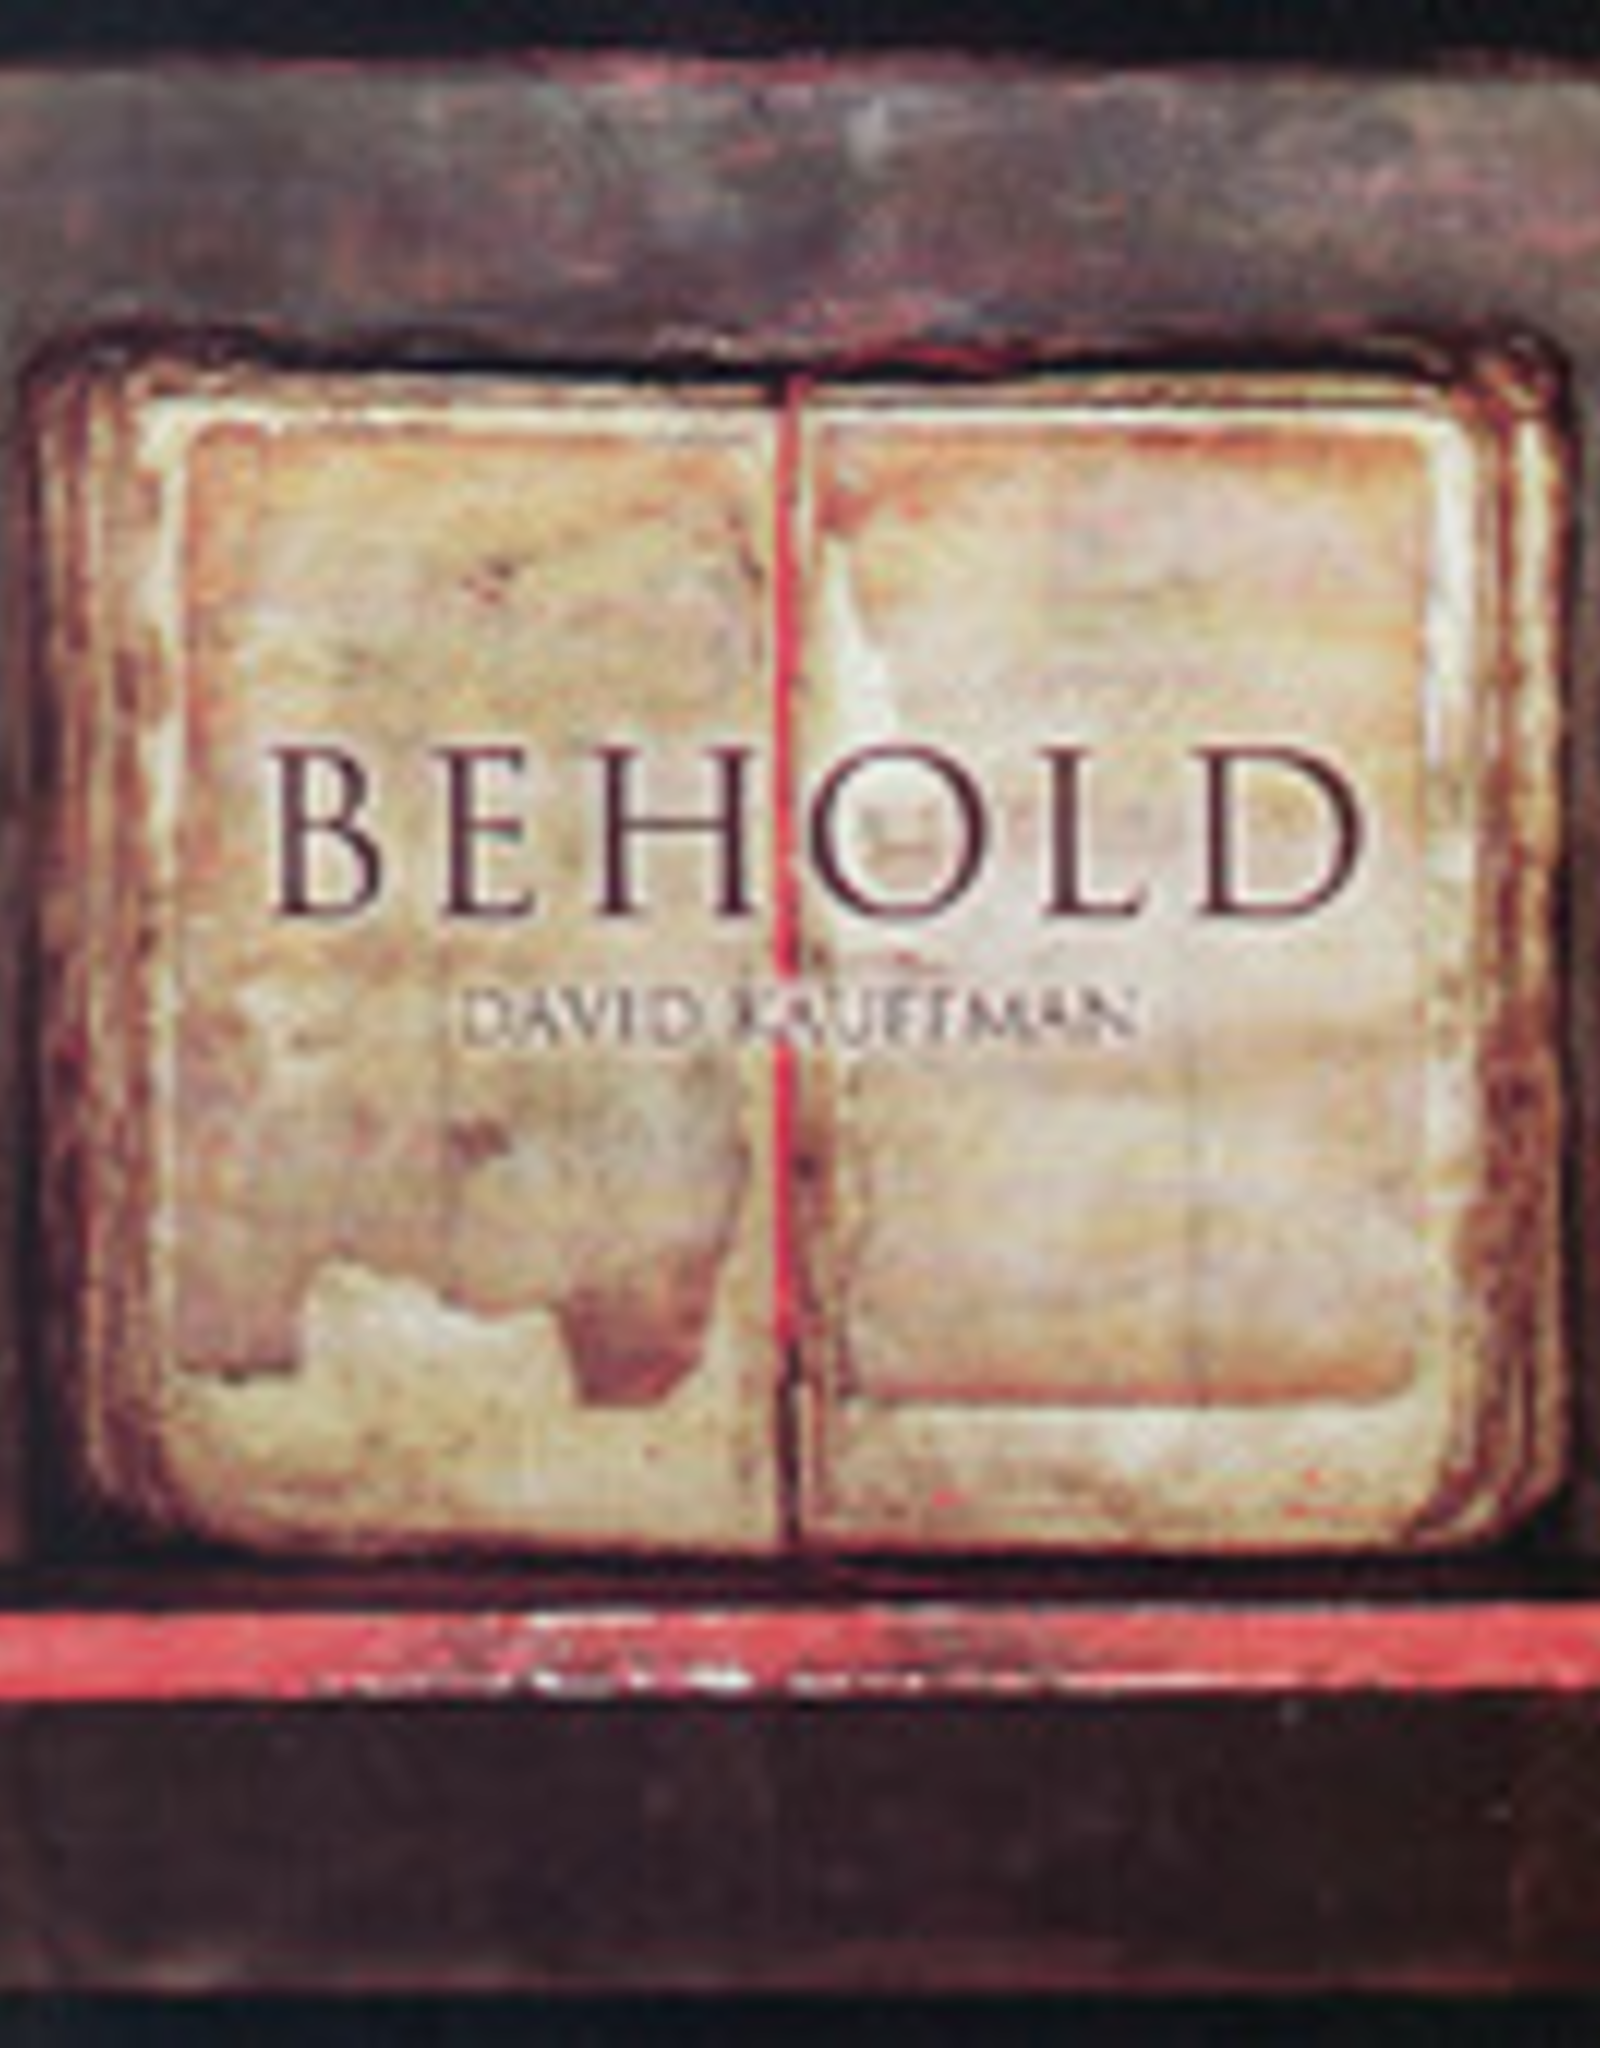 Good For The Soul Music Behold Journal, by David Kauffman (Journal)